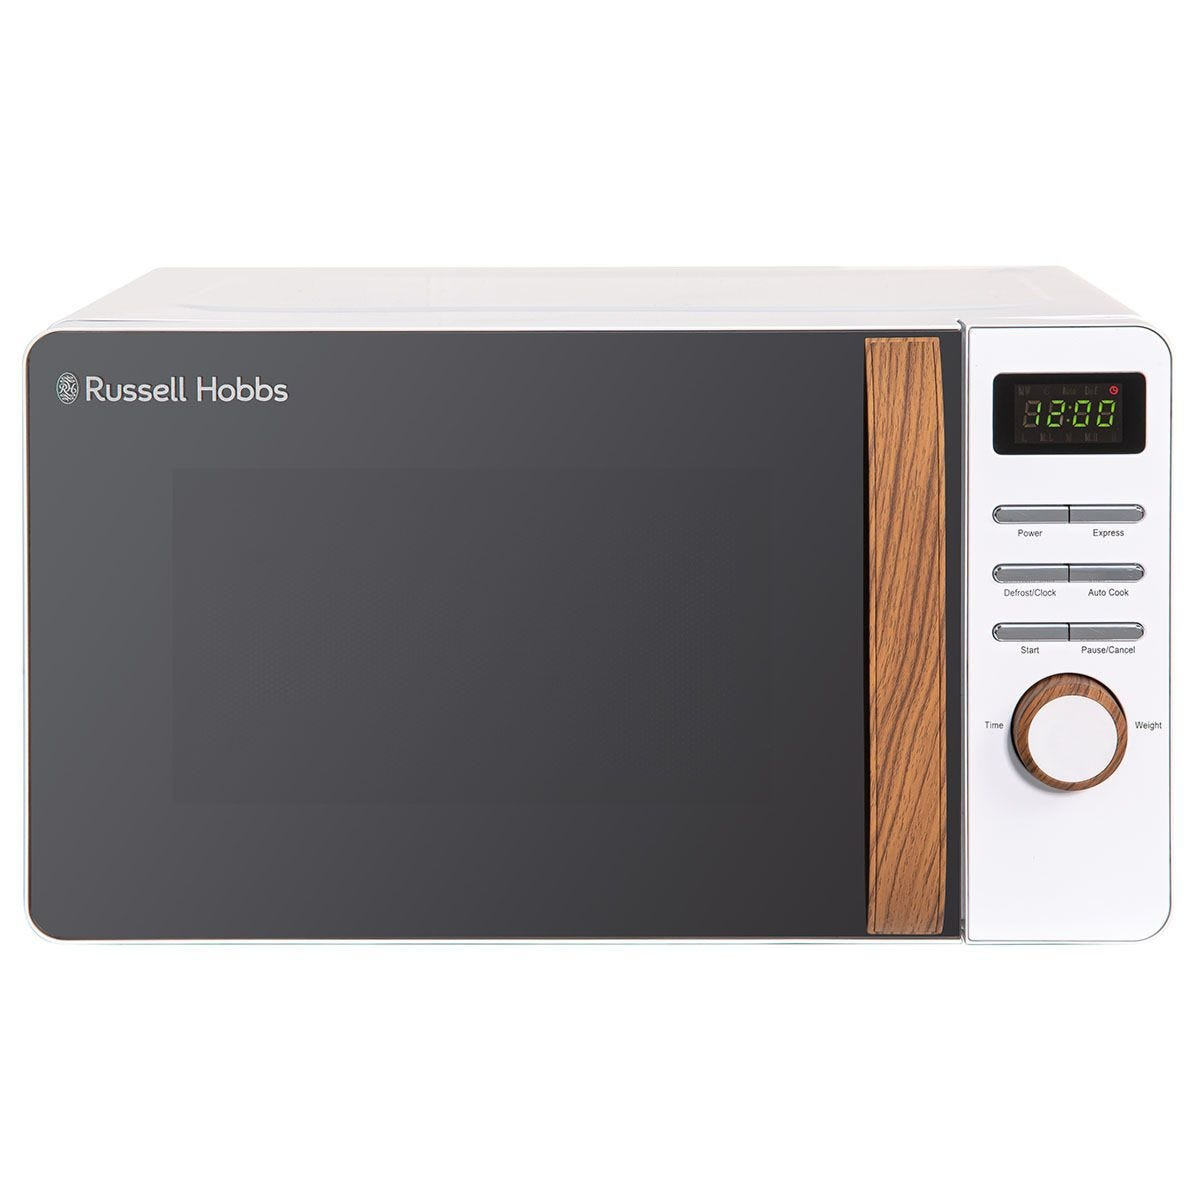 Russell Hobbs RHMD714 Scandi 700W 17L Digital Microwave - White with Wooden Effect Handle